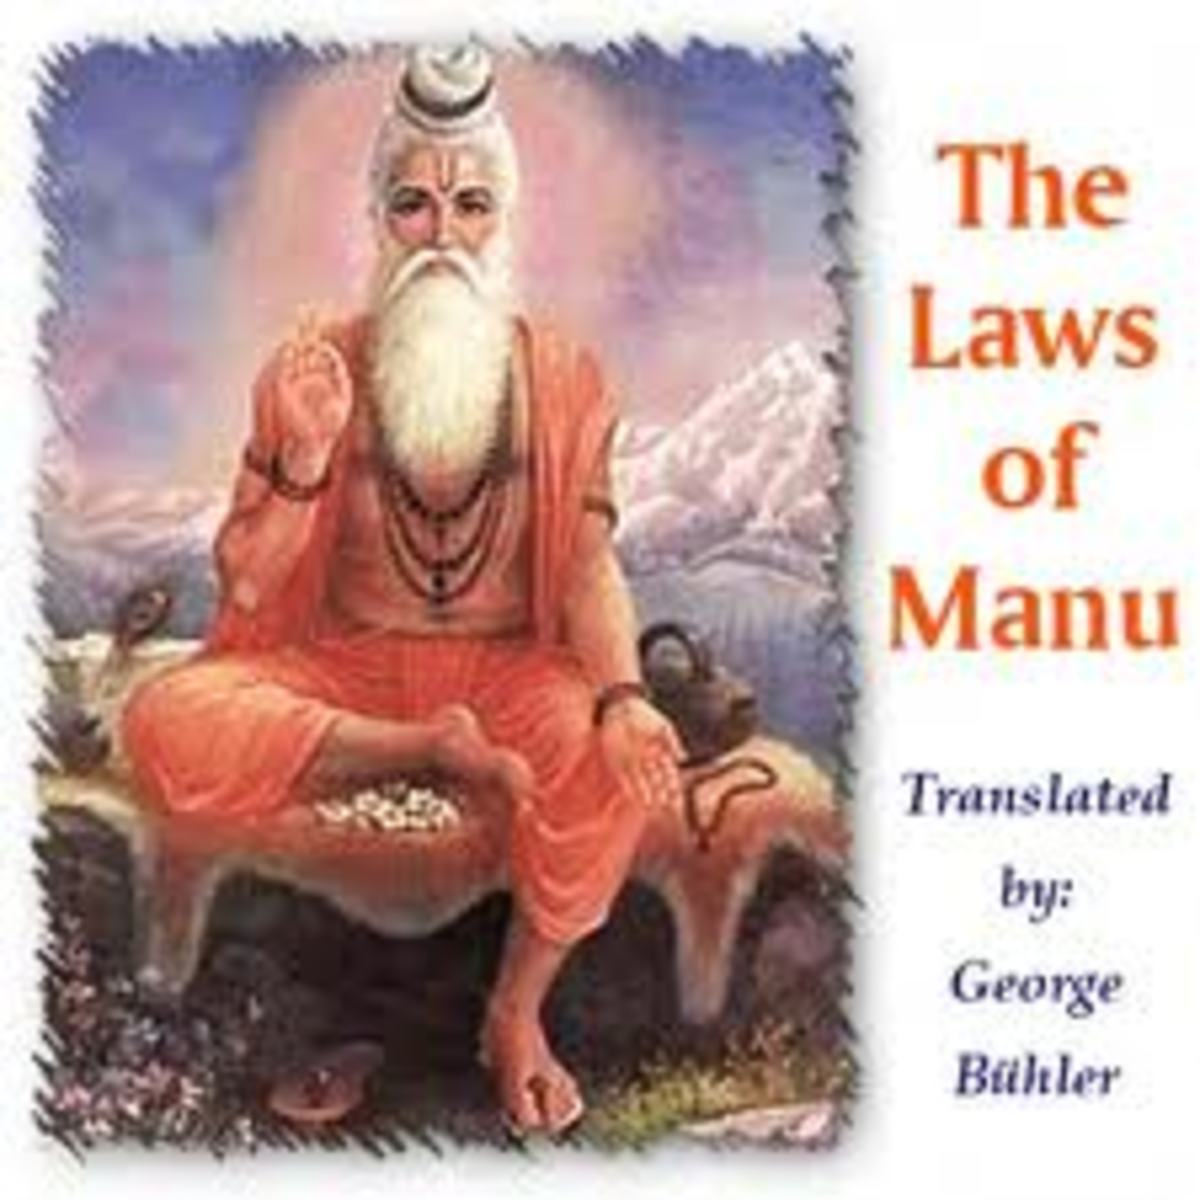 The Laws of Manu, this is the Hindus religious book, where Manu the great sage explain to the other sages about the beginning of the world the creation of mankind and all other religious things.